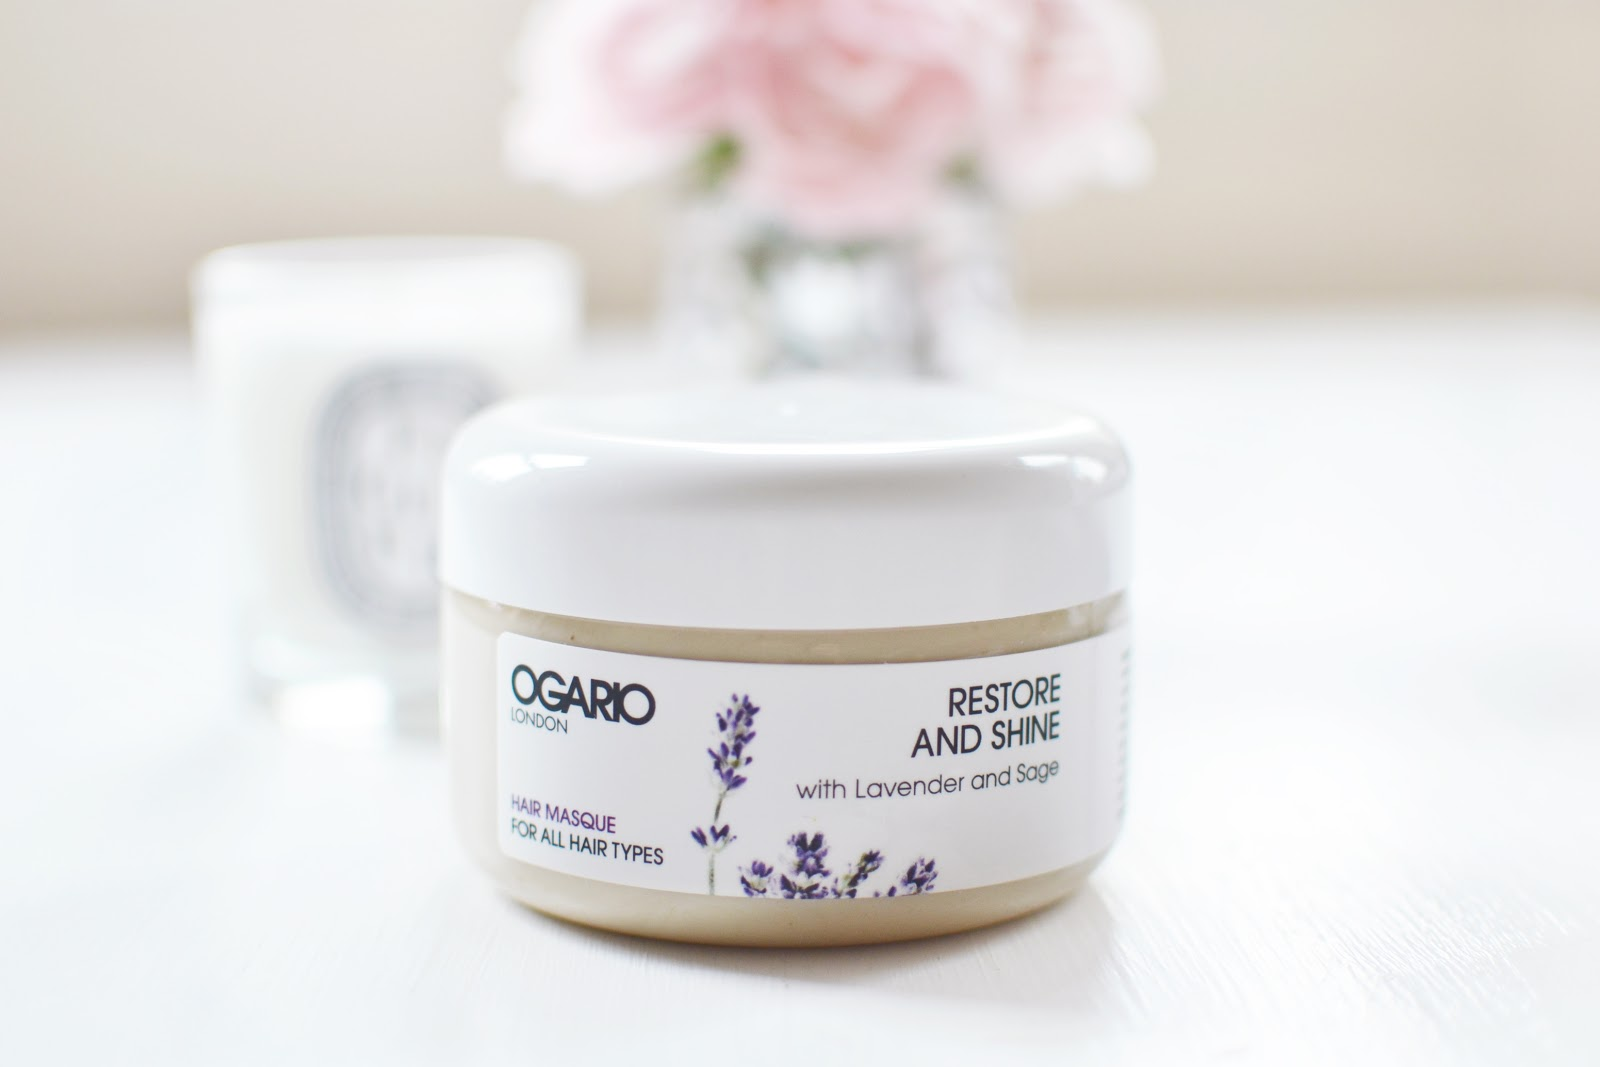 ogario London hair masque